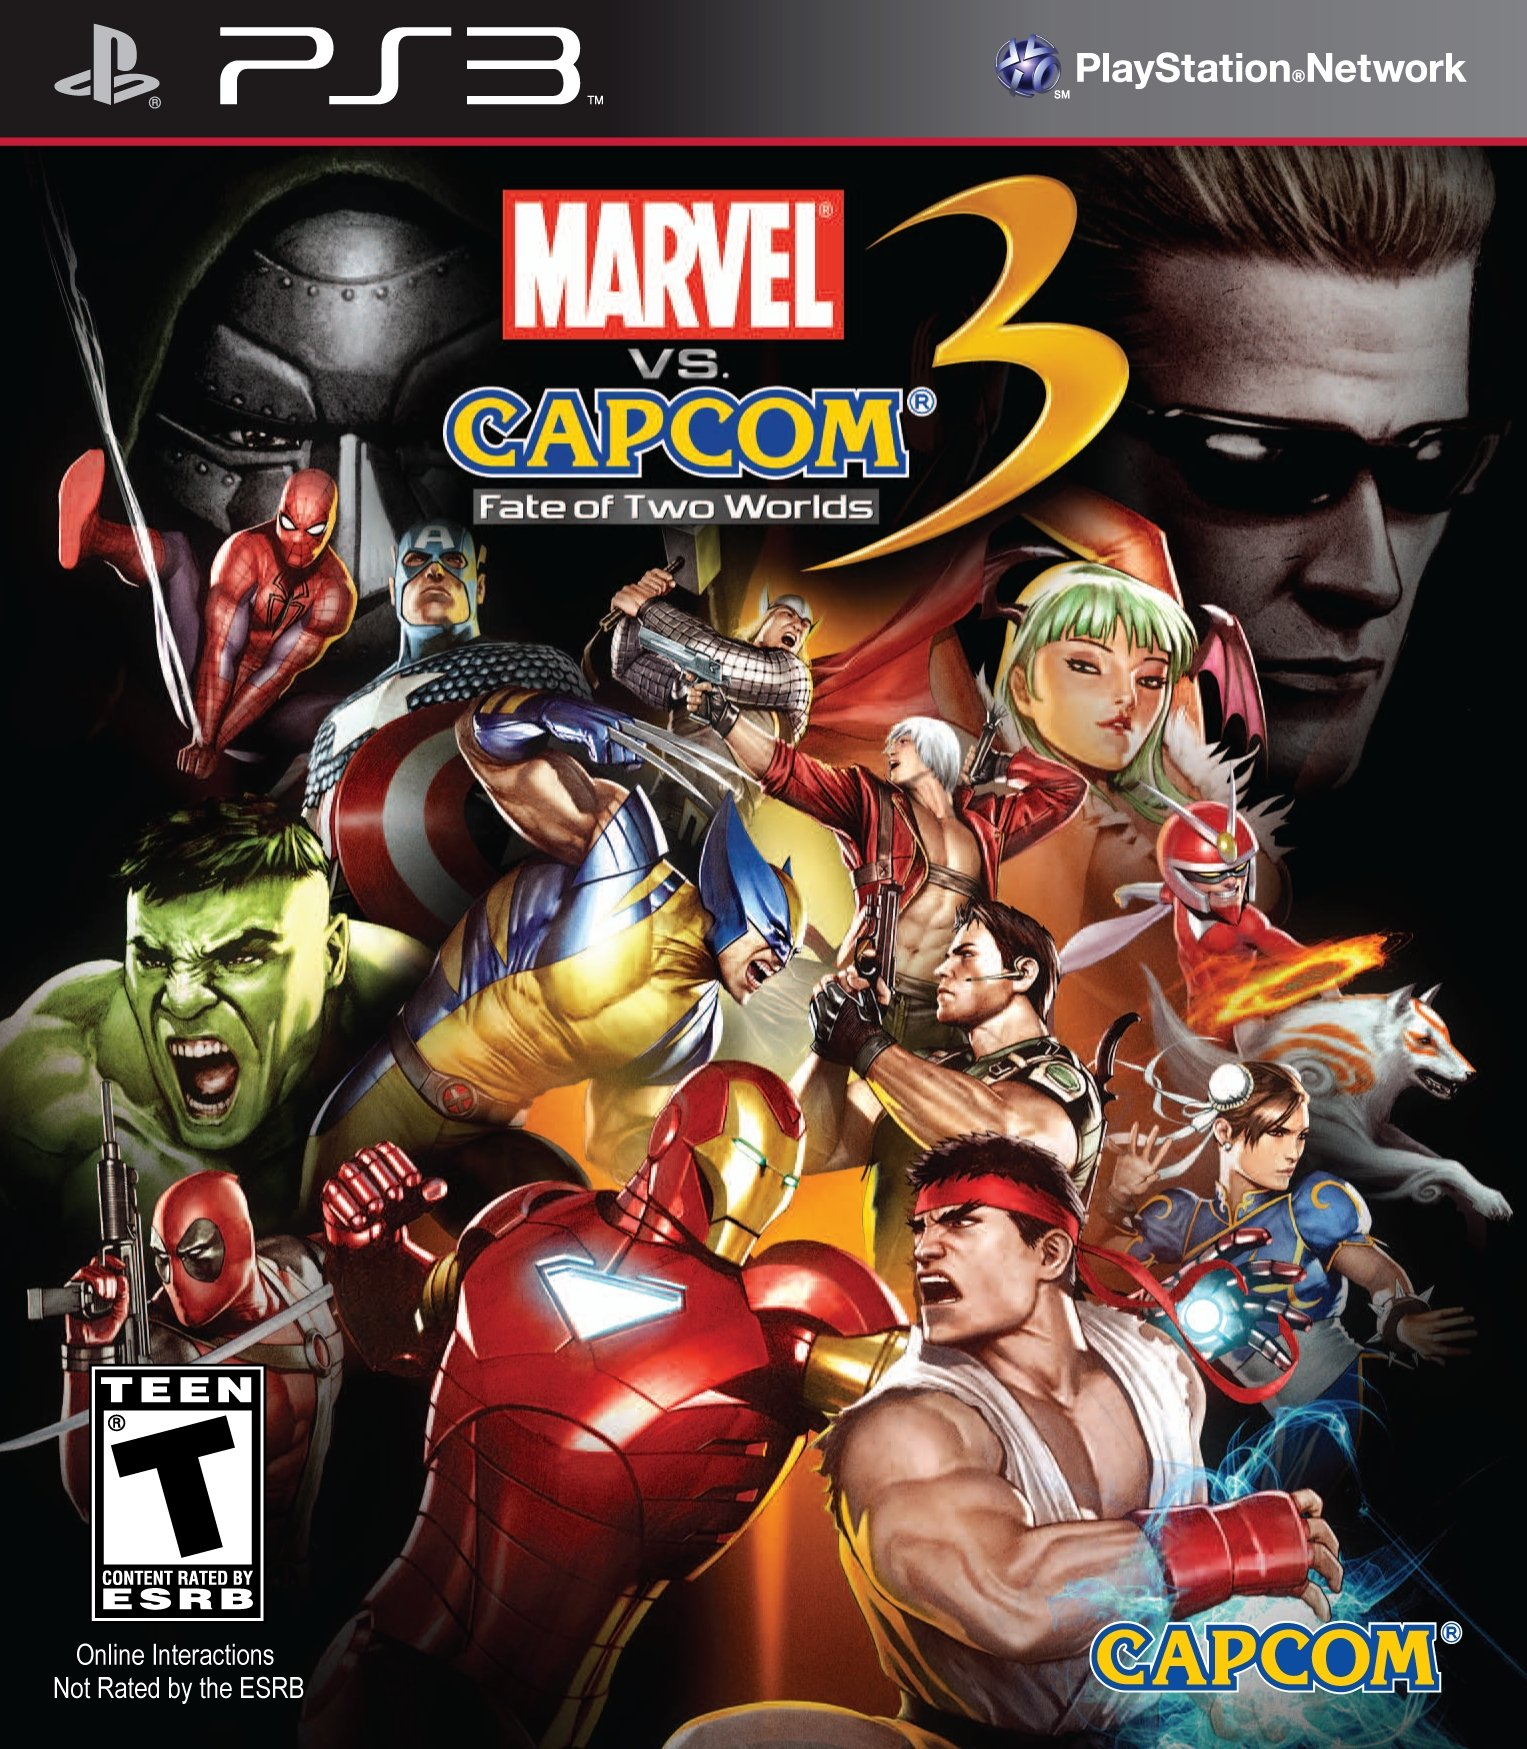 Бокс-арт (PS3) - Marvel vs. Capcom 3: Fate of Two Worlds